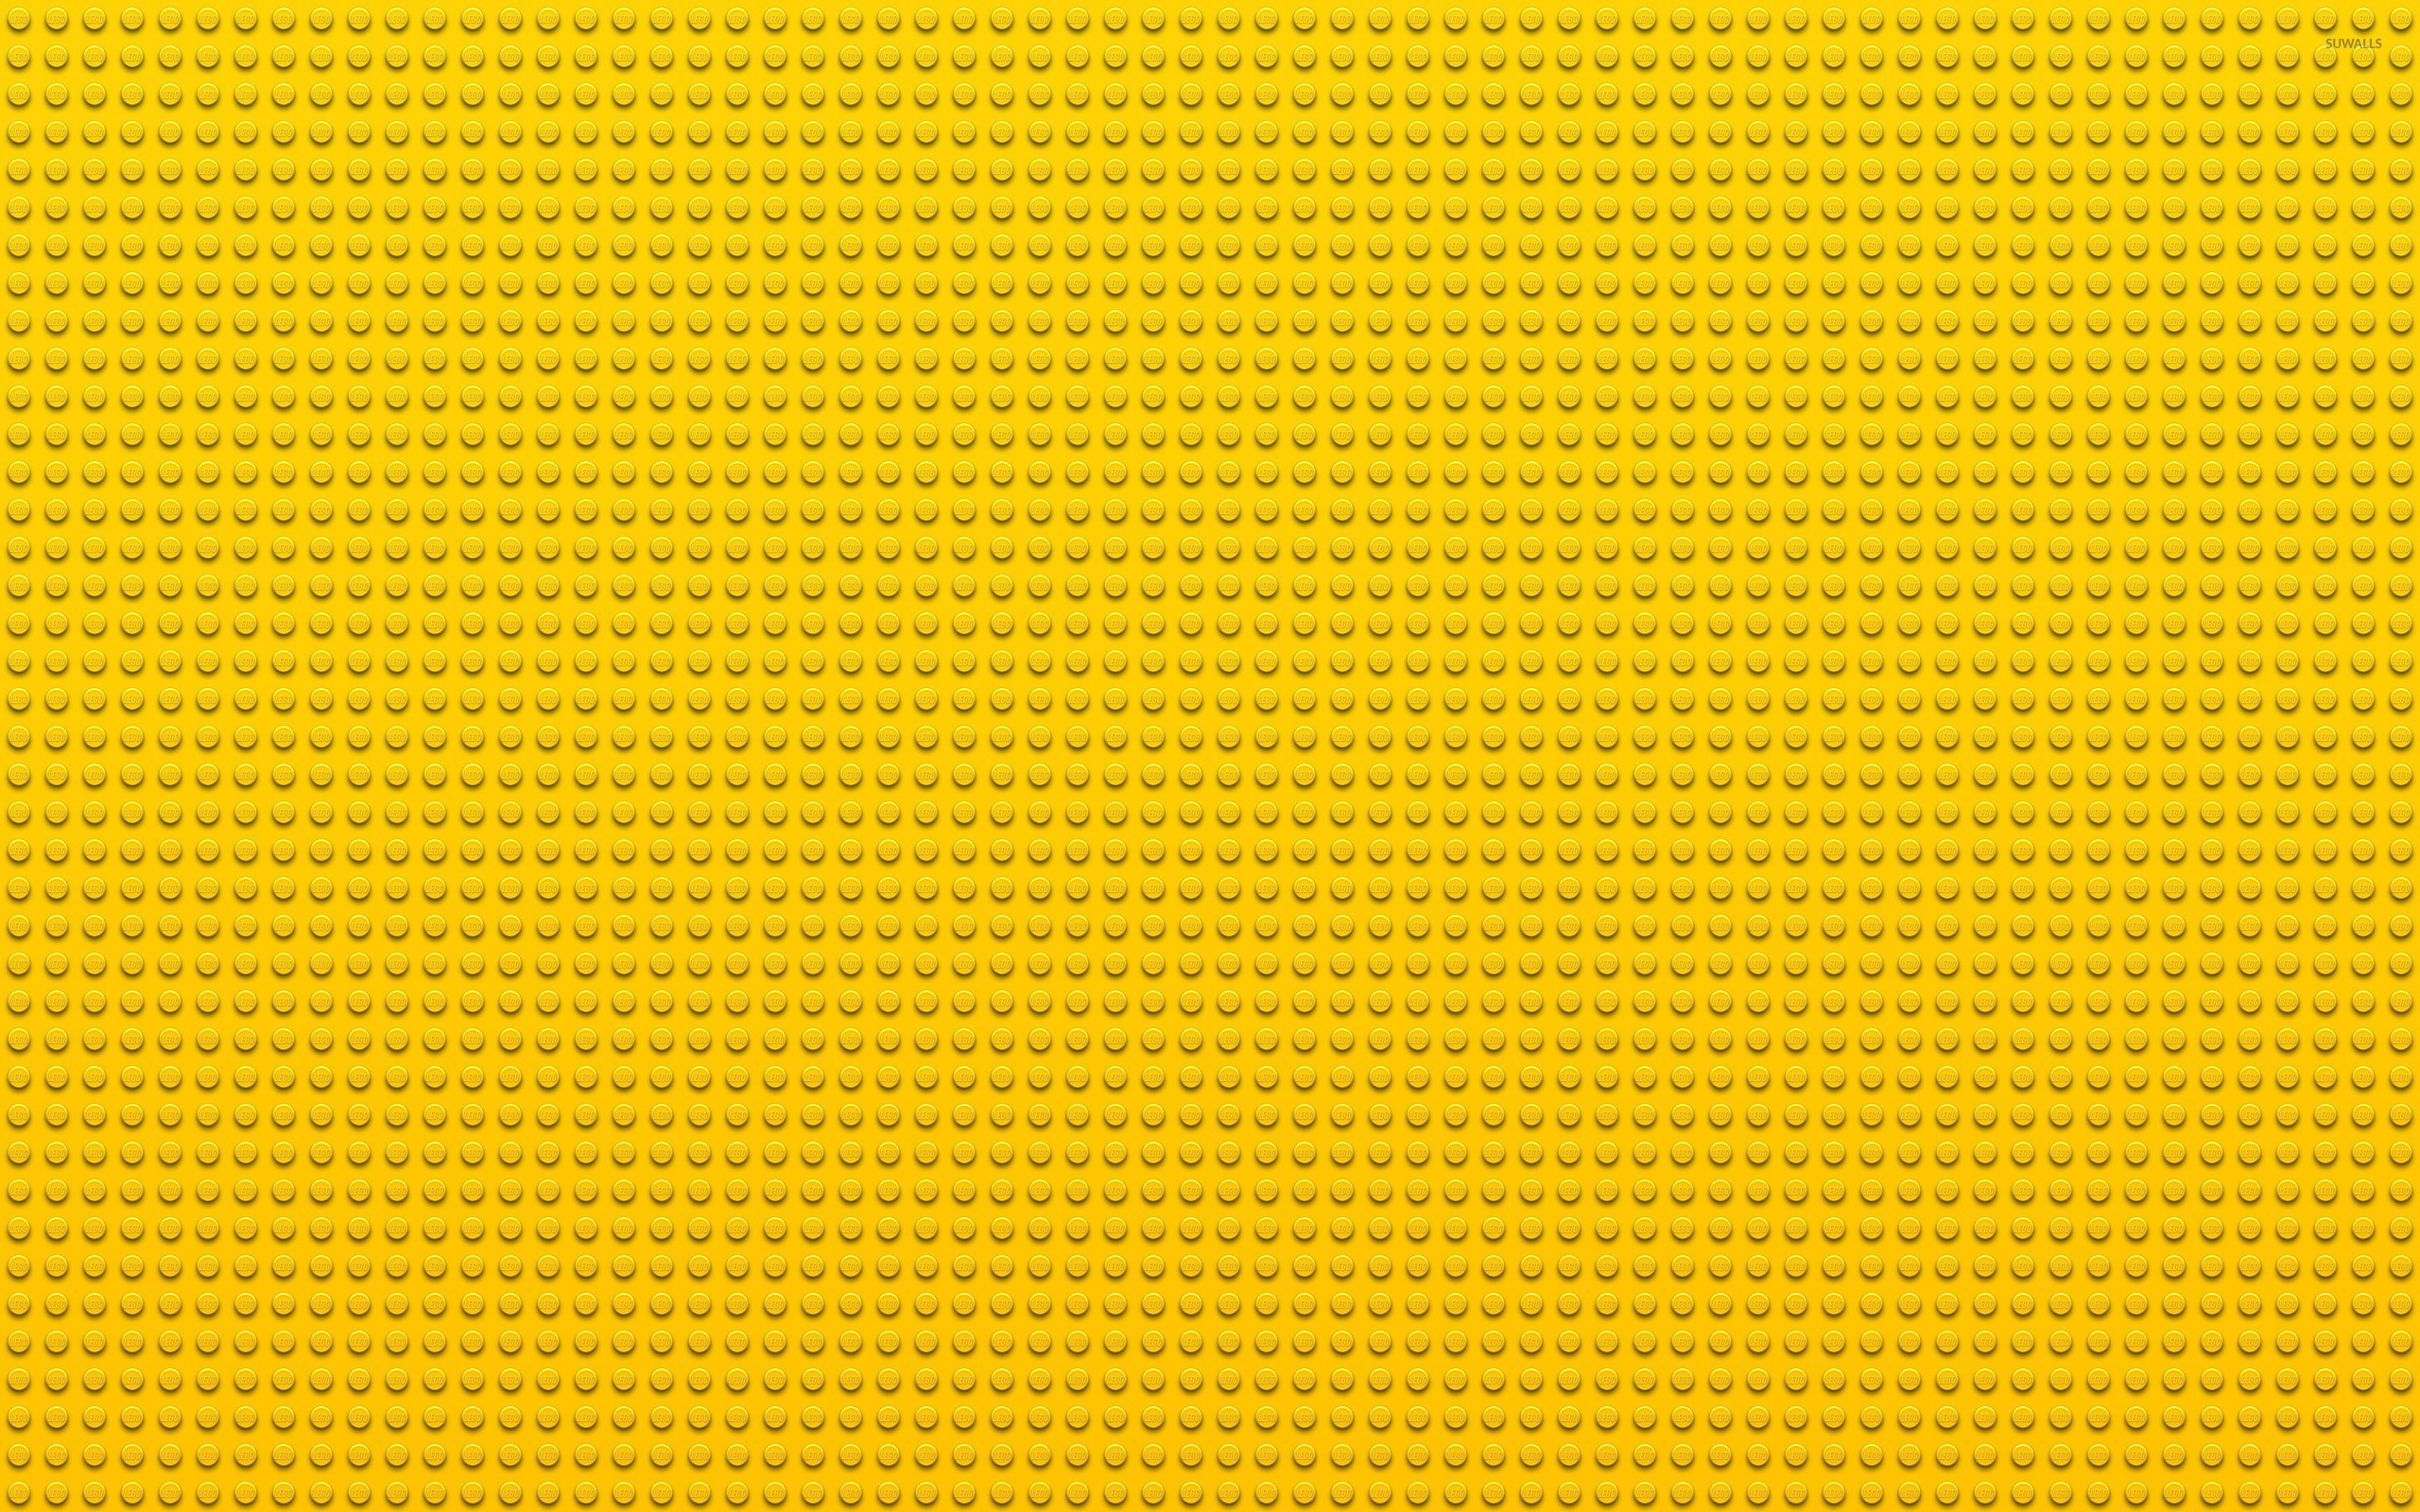 2560x1600 yellow lego wallpaper